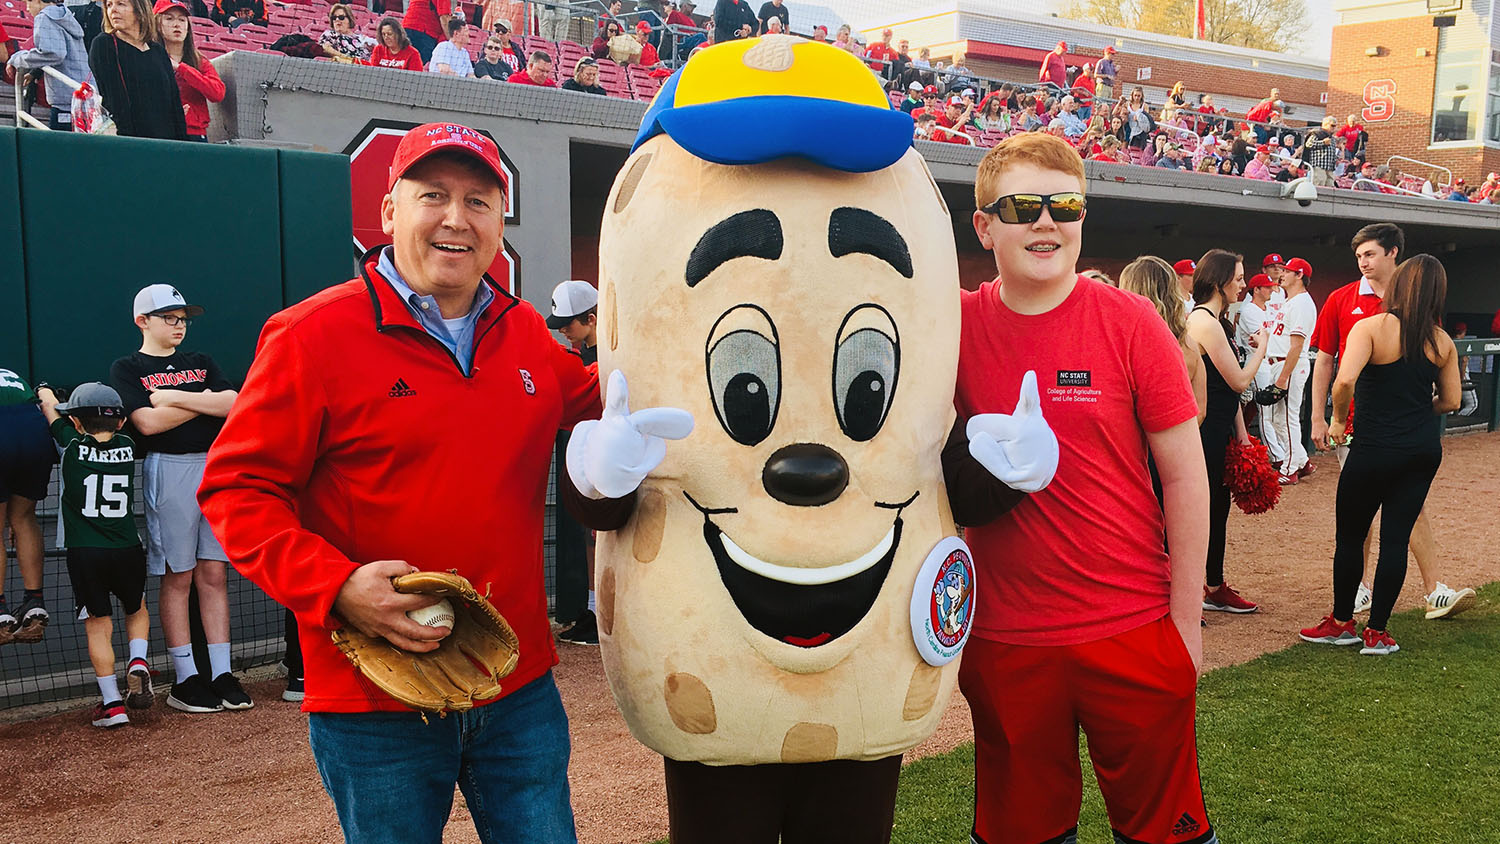 CALS Dean Richard Linton stands with a sports mascot with his son at a baseball game for Father's Day